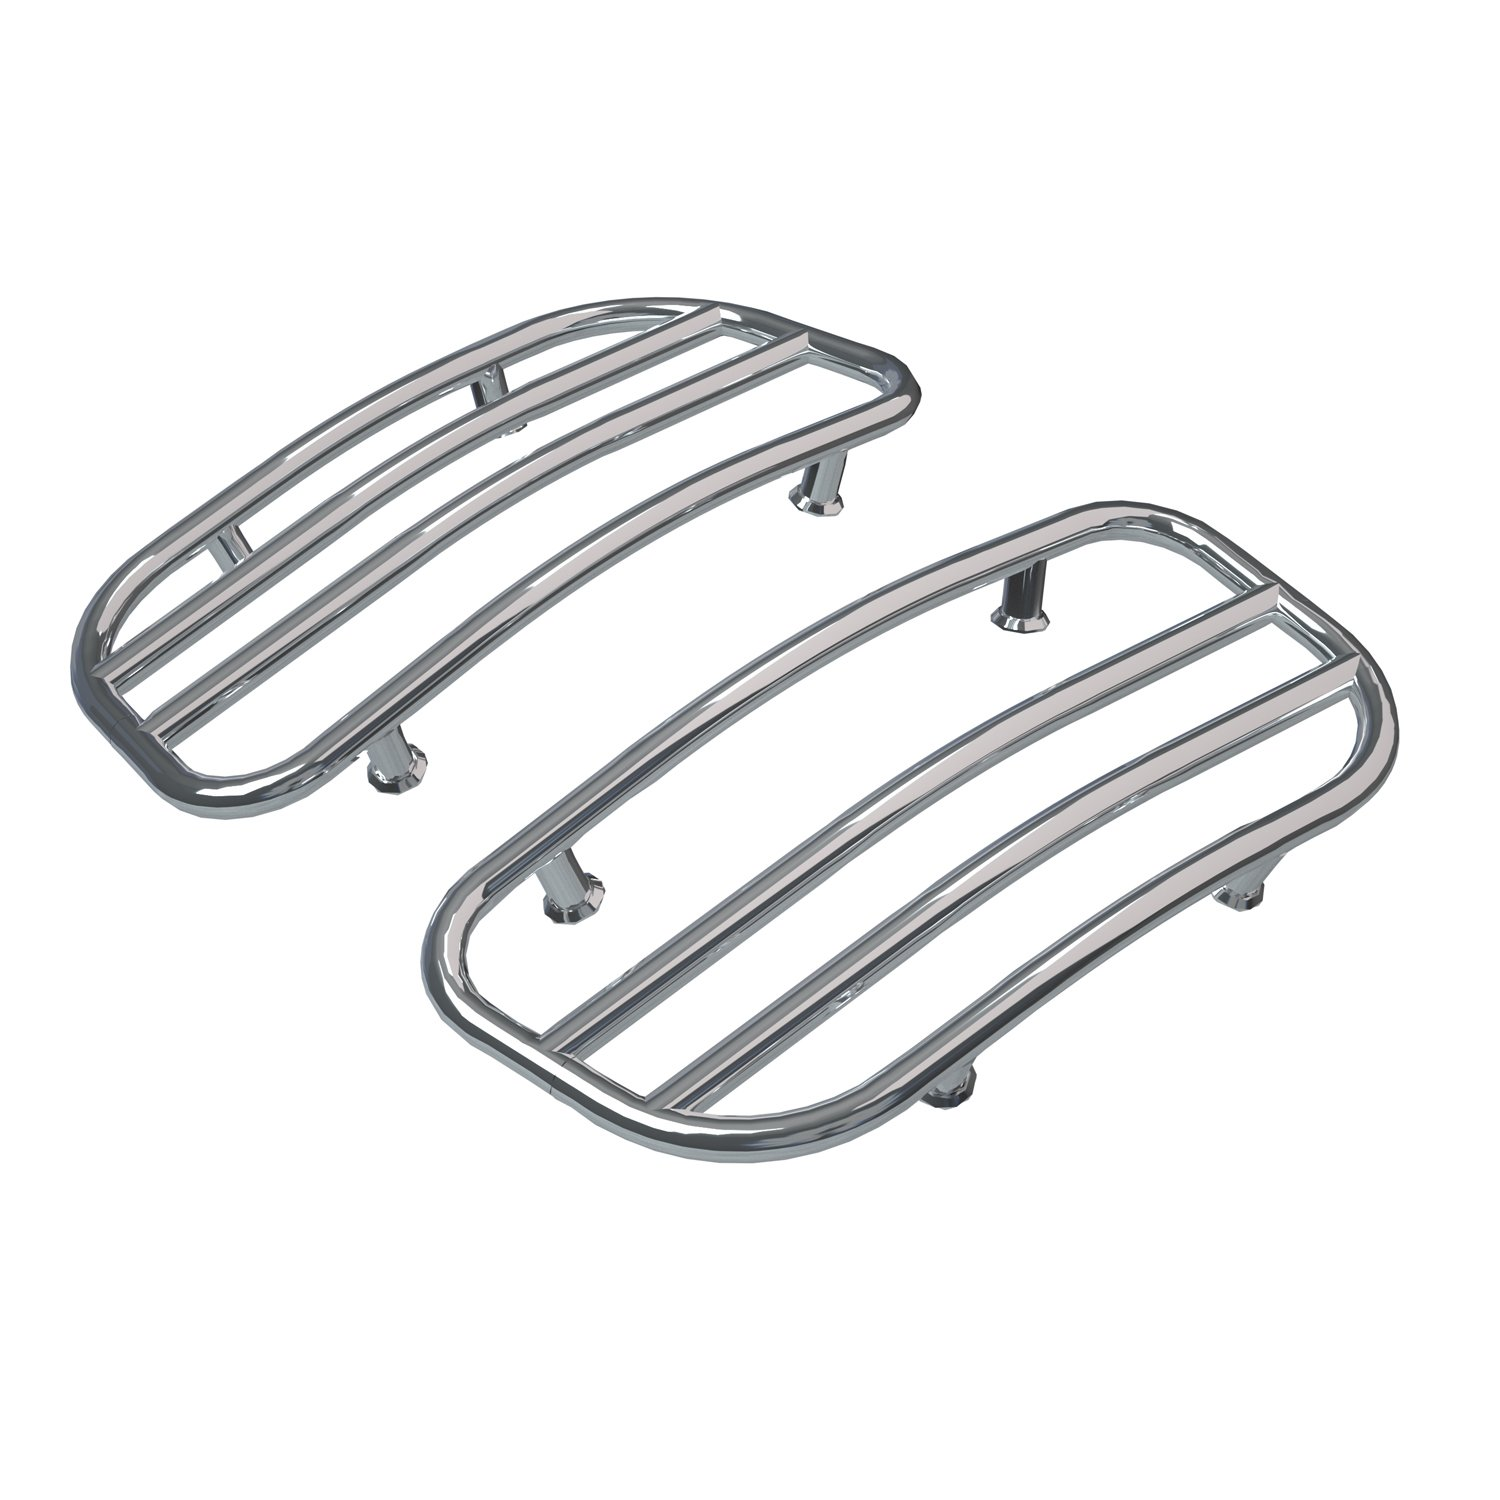 Saddlebag Lid Racks – Chrome